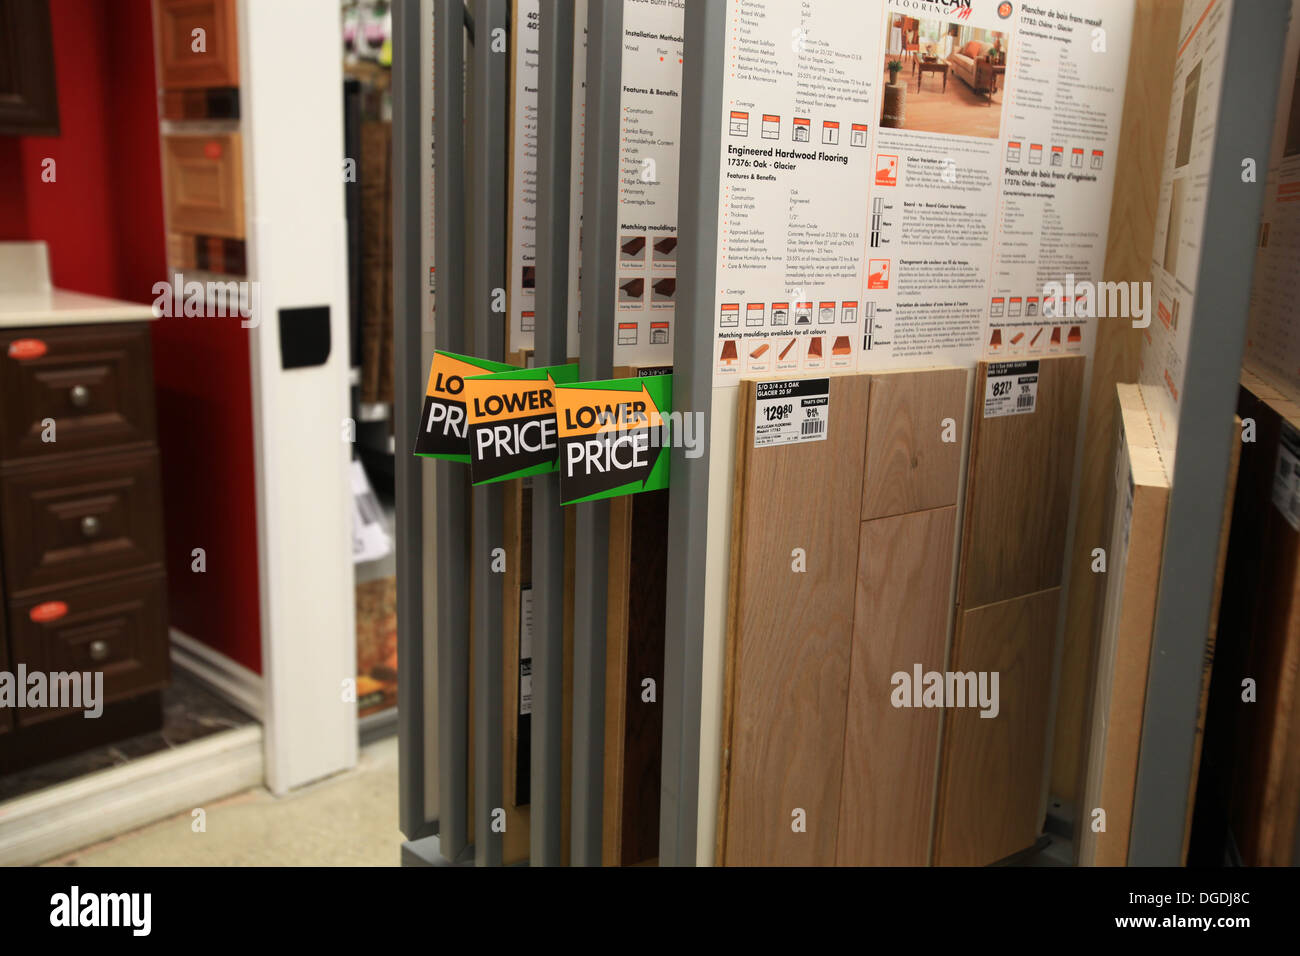 Kitchener Flooring Hardwood And Laminate Flooring Samples On Display In The Home